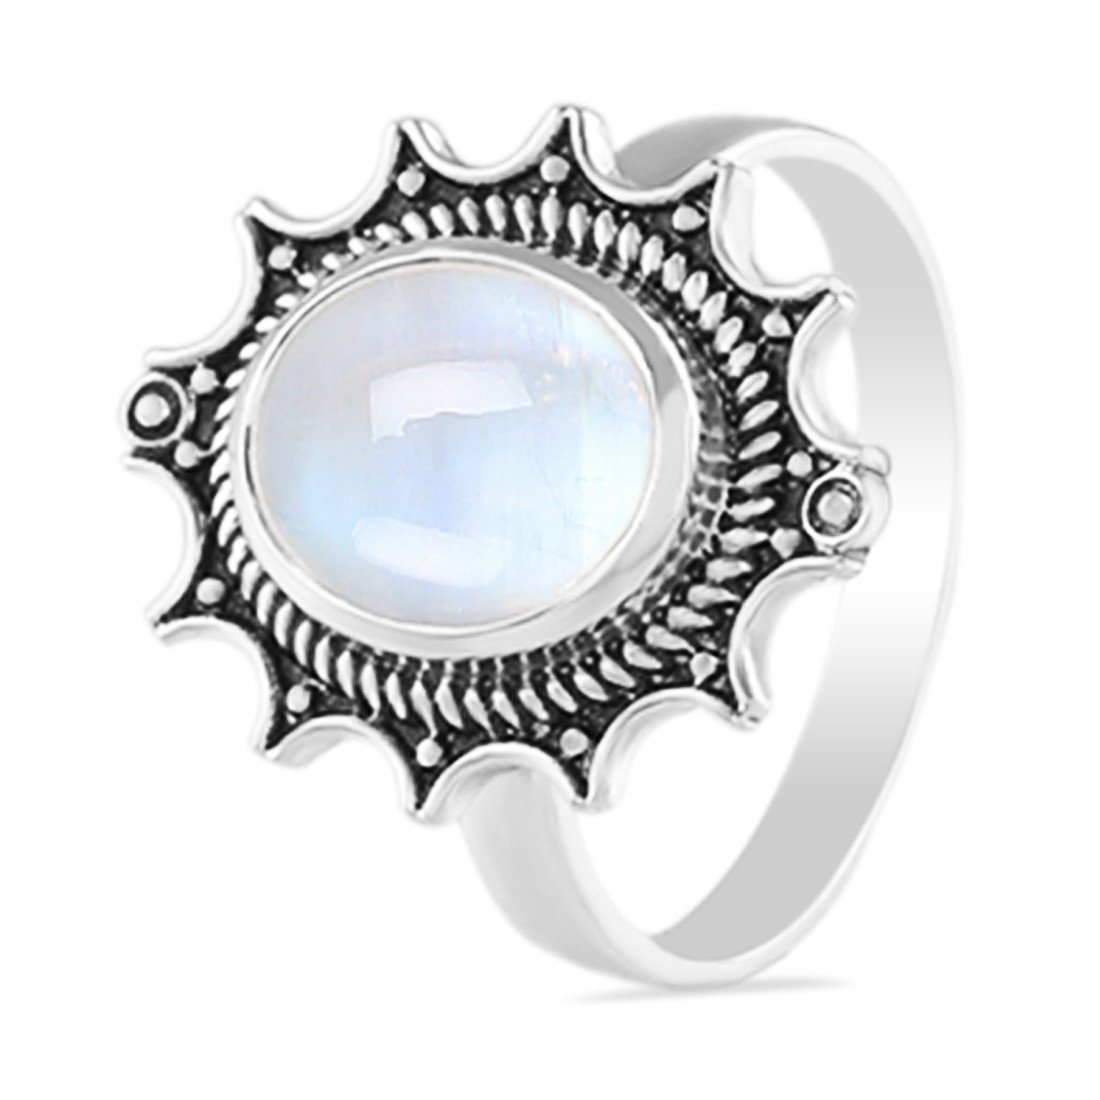 Moonstone Ring-Glitterman Moonstone Ring 925 SILVER & MOONSTONE